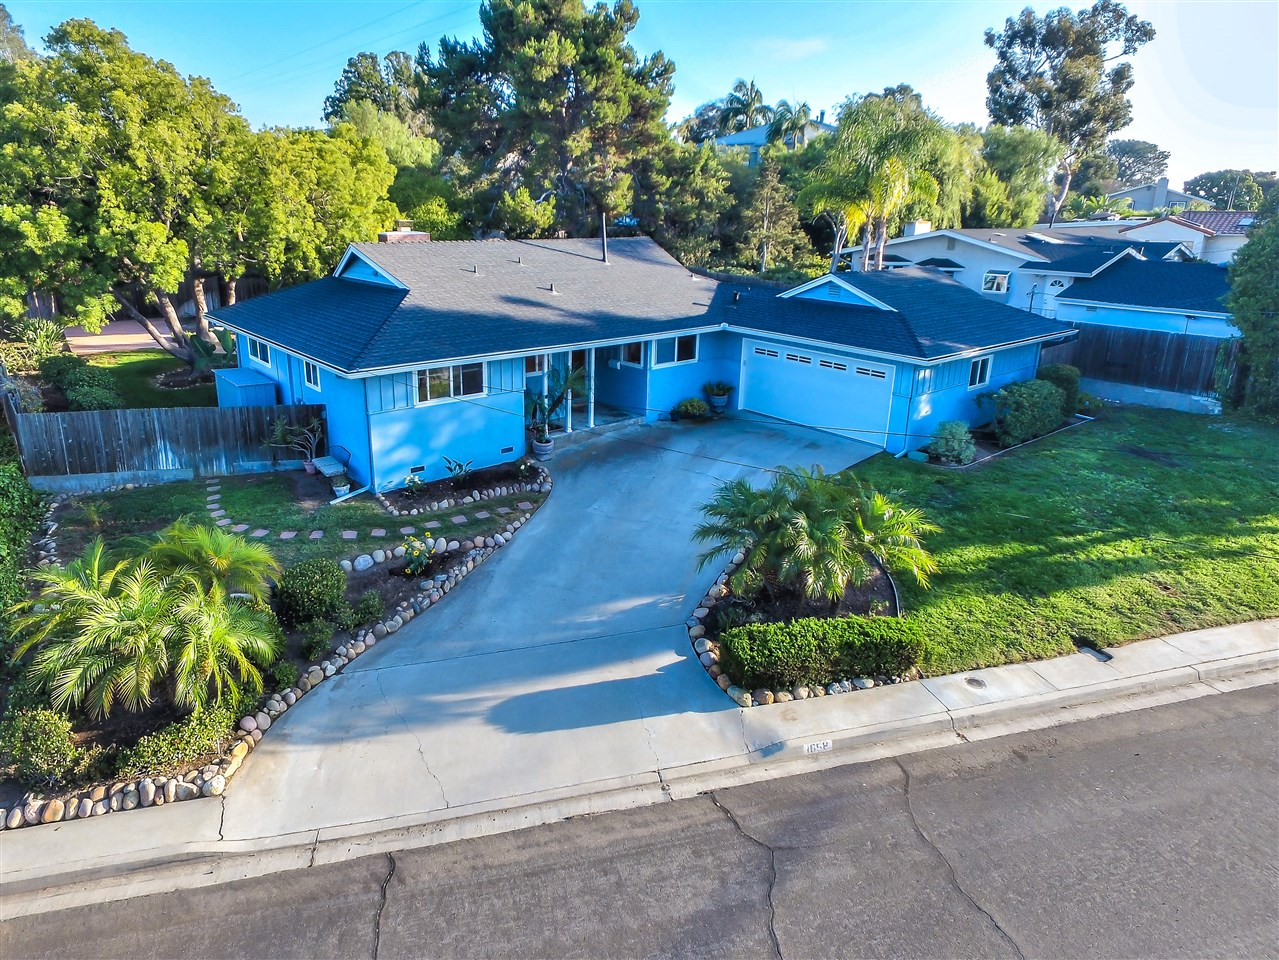 Rarely available home in a sought after North PB neighborhood known for huge lot sizes & multi-million dollar houses. Great location bordering La Jolla, close to the beach & a couple blocks to Kate Sessions Park.  Large 10,400 sq ft lot with so much room to expand!  Serene park like backyard with shade trees & birds chirping. Remodeled Chef's style kitchen featuring granite counters, custom cabinets & stainless steel appliances.  Kitchen/dining/living room have an open great room feel.  See supplement...What a location!  This home is located close to the beach and in an area that has a true neighborhood feel!  It has so much potential and upside if it were to be expanded into a 2 story DREAM home!  It may also be able to have granny flat added due to it's large level 10,400 sq ft lot.  It has had many updates over the years such as central air conditioning and vinyl windows, has been well maintained, and has also had regular service to prevent termites. Don't miss your chance to own a home in this premier Pacific Beach neighborhood!   Buyer to verify all information prior to close of escrow.